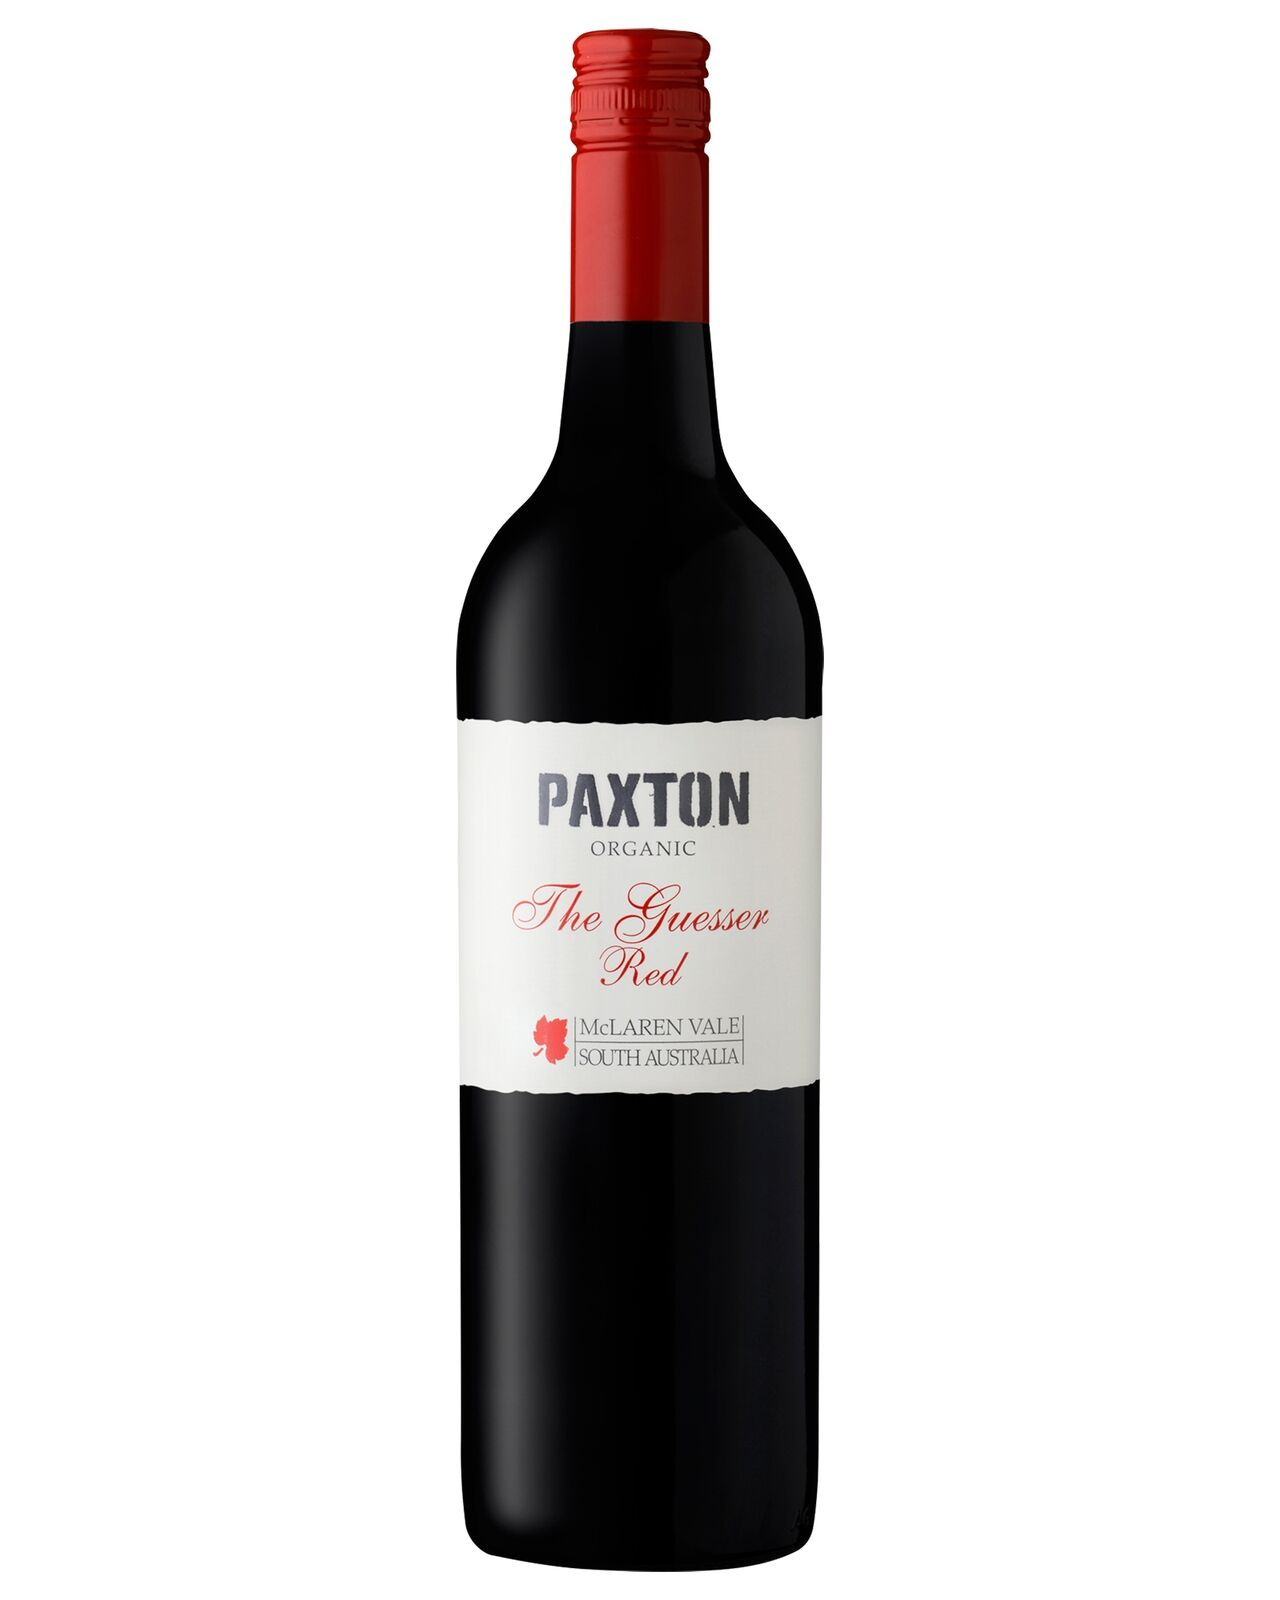 Paxton The Guesser Red case of 6 Dry Red Wine 750mL McLaren Vale